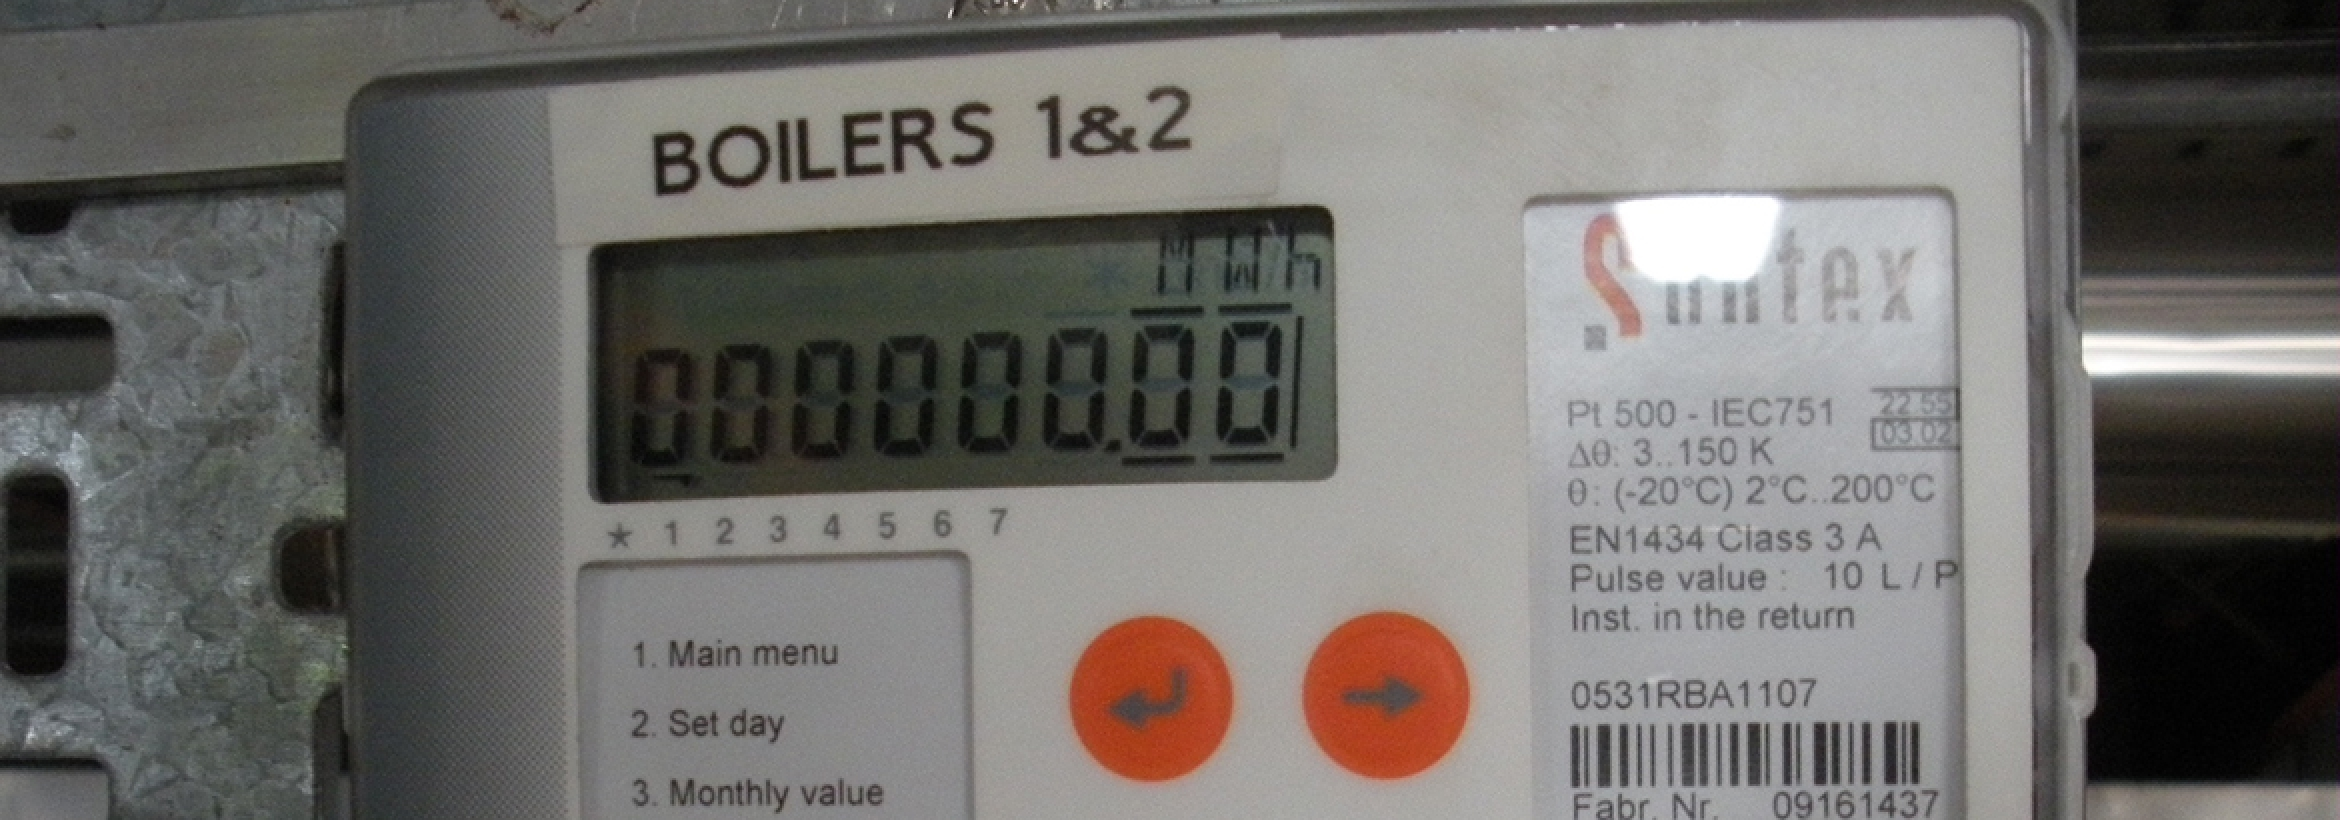 Metering equipment for energy consumption to illustrate the NFU Energy compliance service for Heat Network (Metering and Billing) Regulations 2014